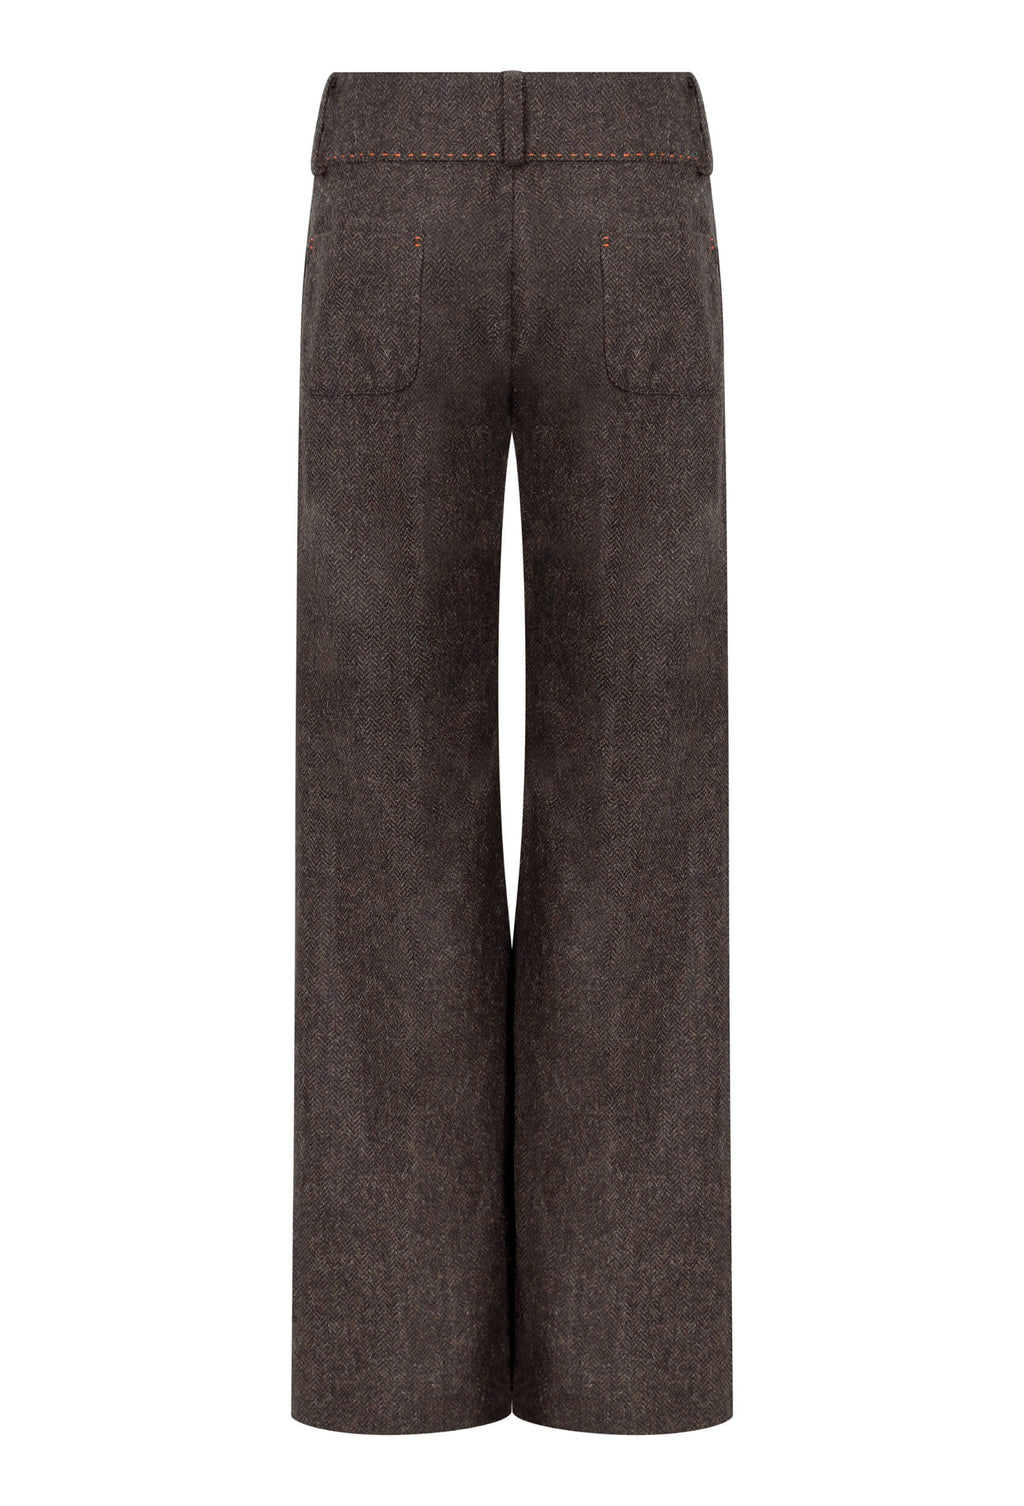 chocolate-brownp-herringbone-tweed-trousers